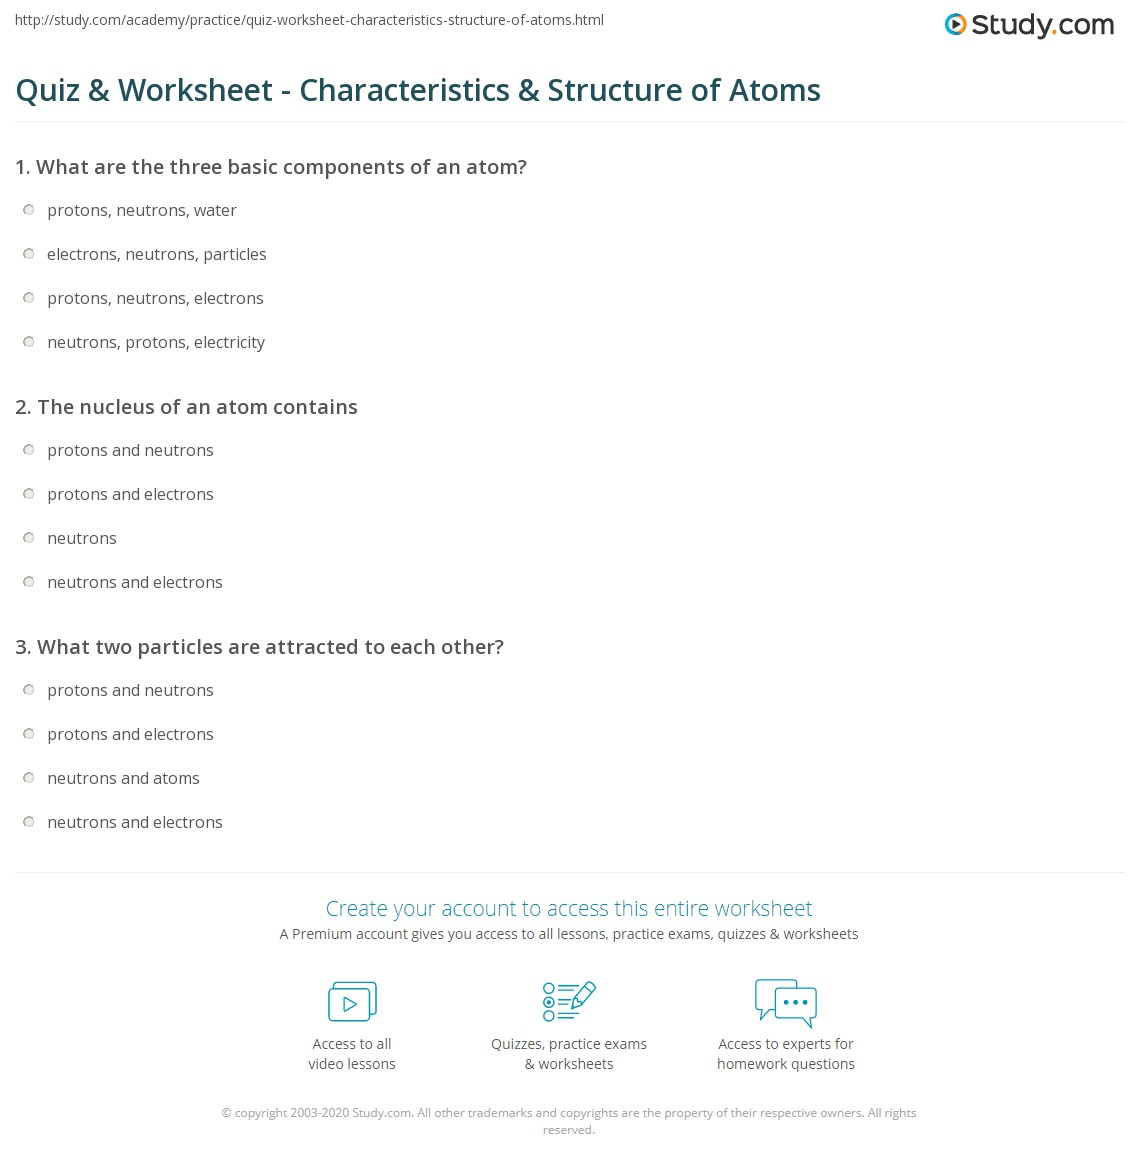 a study of atoms Games, quizzes & problem solving using ict supported self study developing concepts characteristics of atoms isotopes, nuclides & nuclear reactions atomic structure.